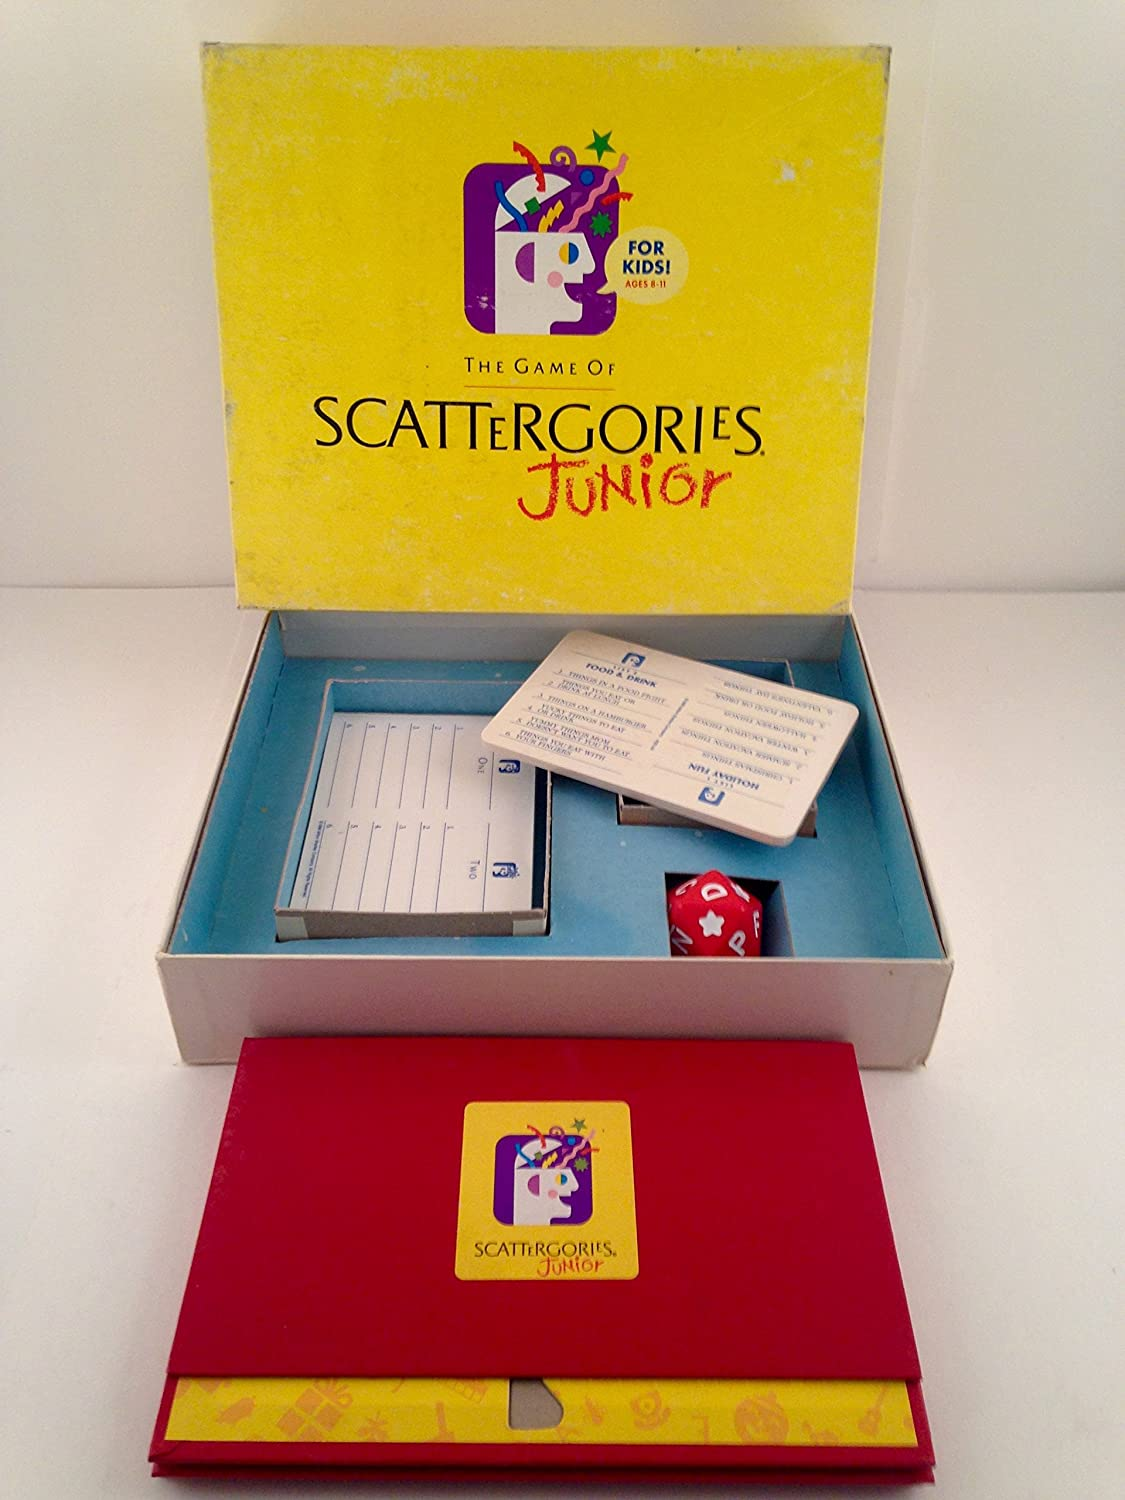 Scattergories Junior by Scattegories Junior: Amazon.es: Juguetes y juegos